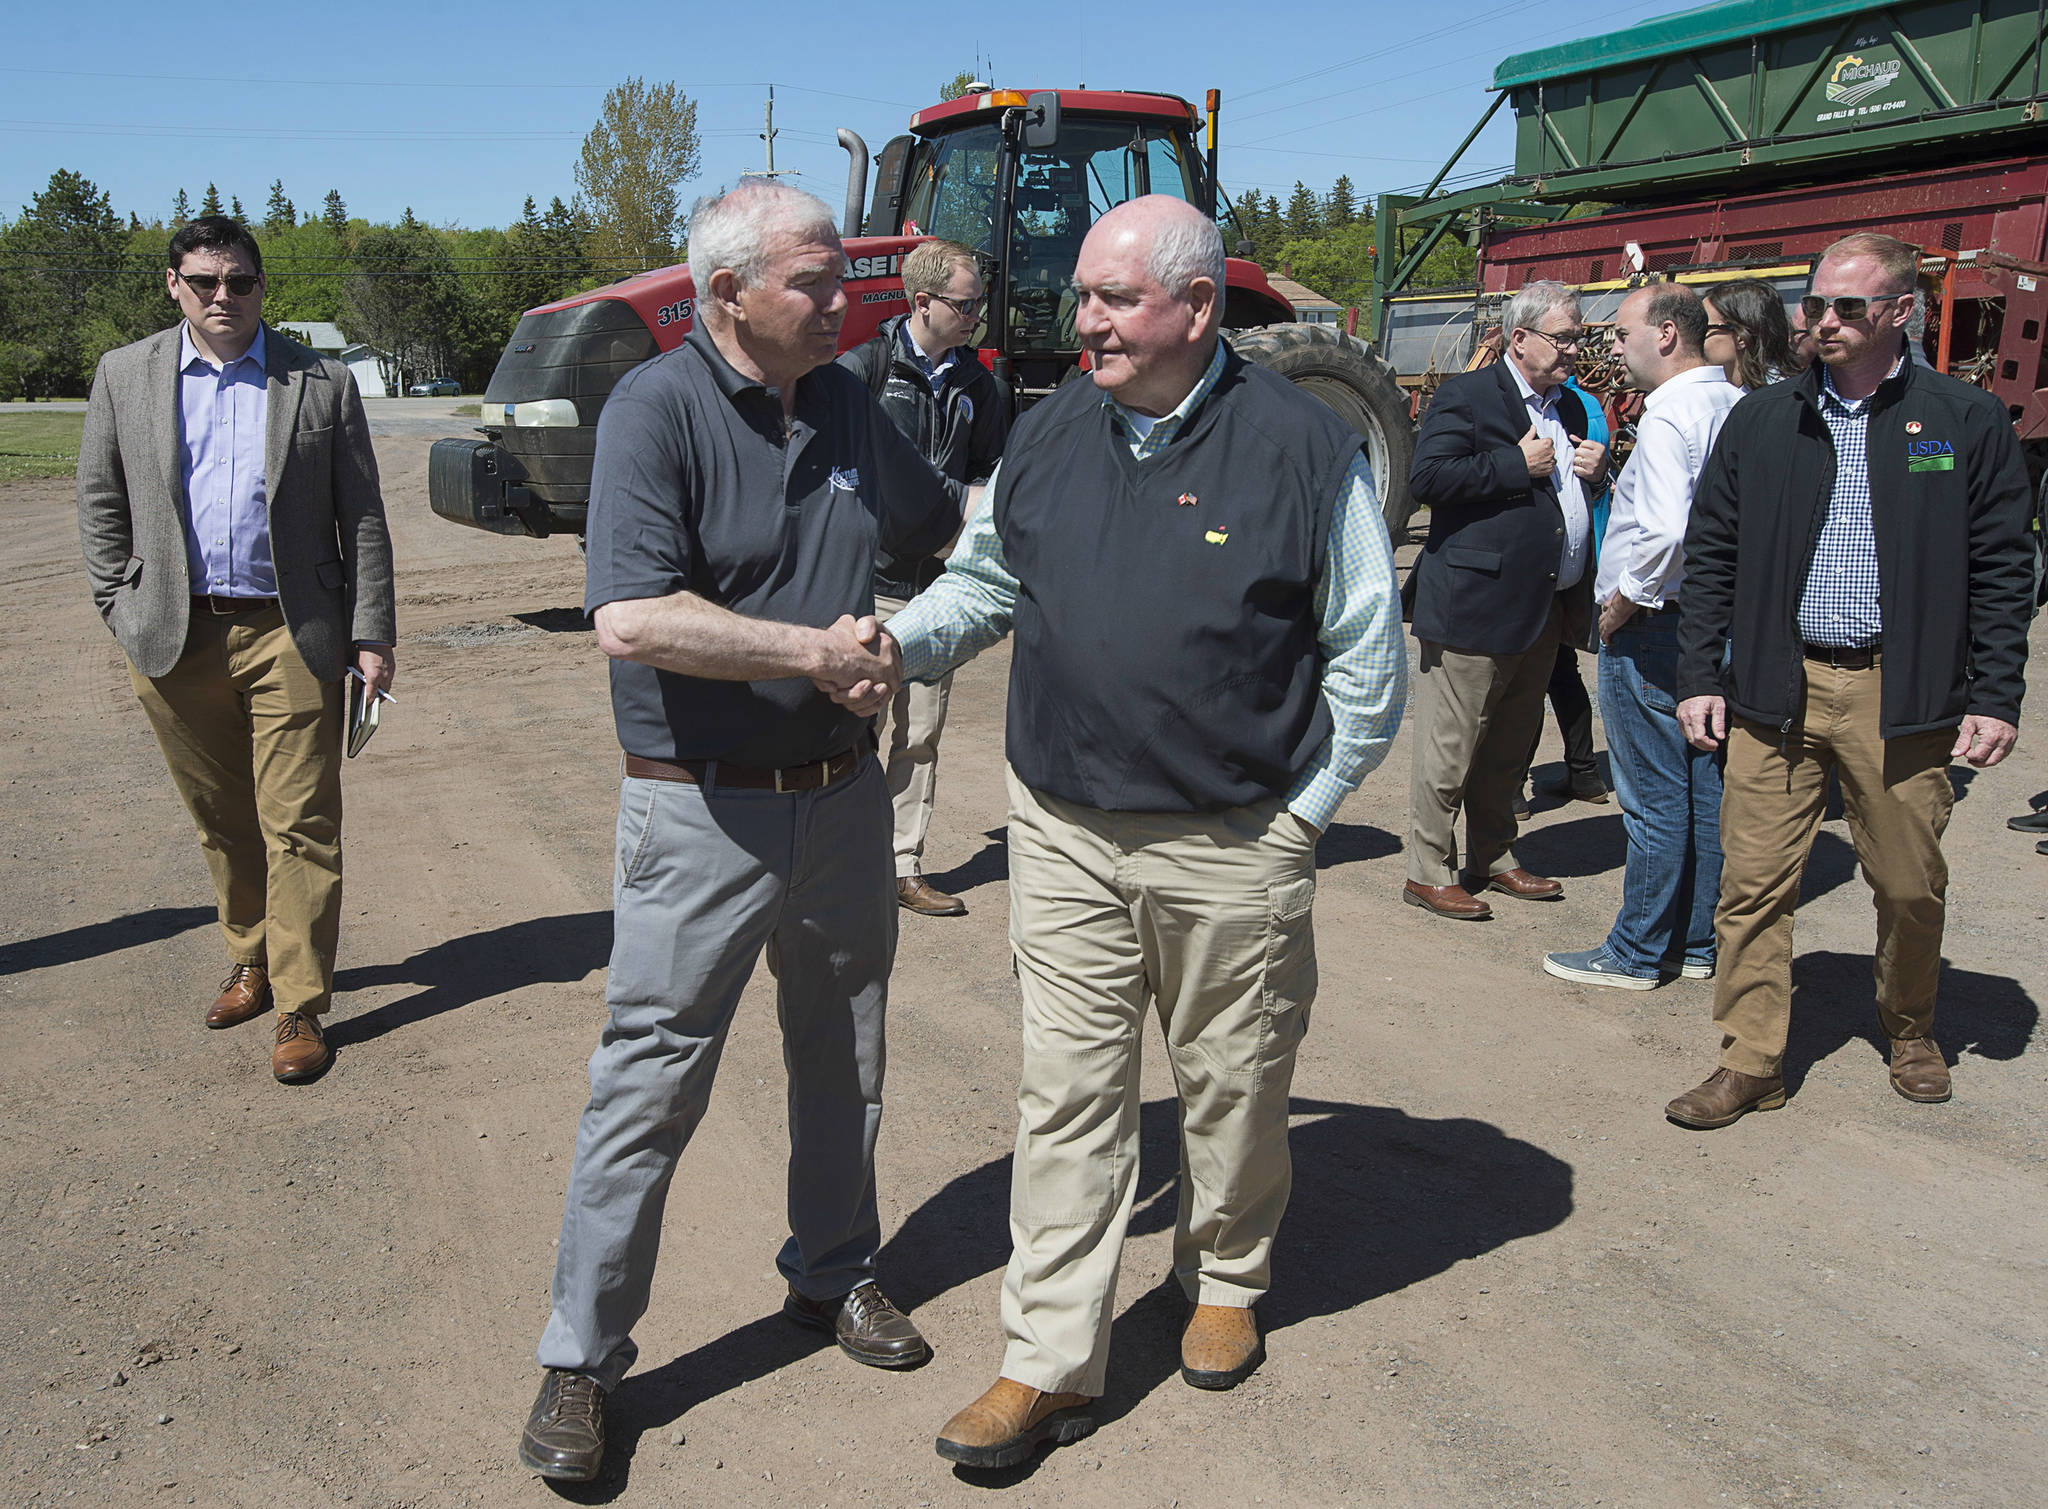 U.S. Secretary of Agriculture Sonny Perdue, right, shakes hands with owner Ray Keenan after touring Rollo Bay Holdings, which specializes in potato producing, marketing, shipping and exporting, in Souris, Prince Edward Island, Canada, on Friday, June 15, 2018. (Andrew Vaughan/The Canadian Press via AP)